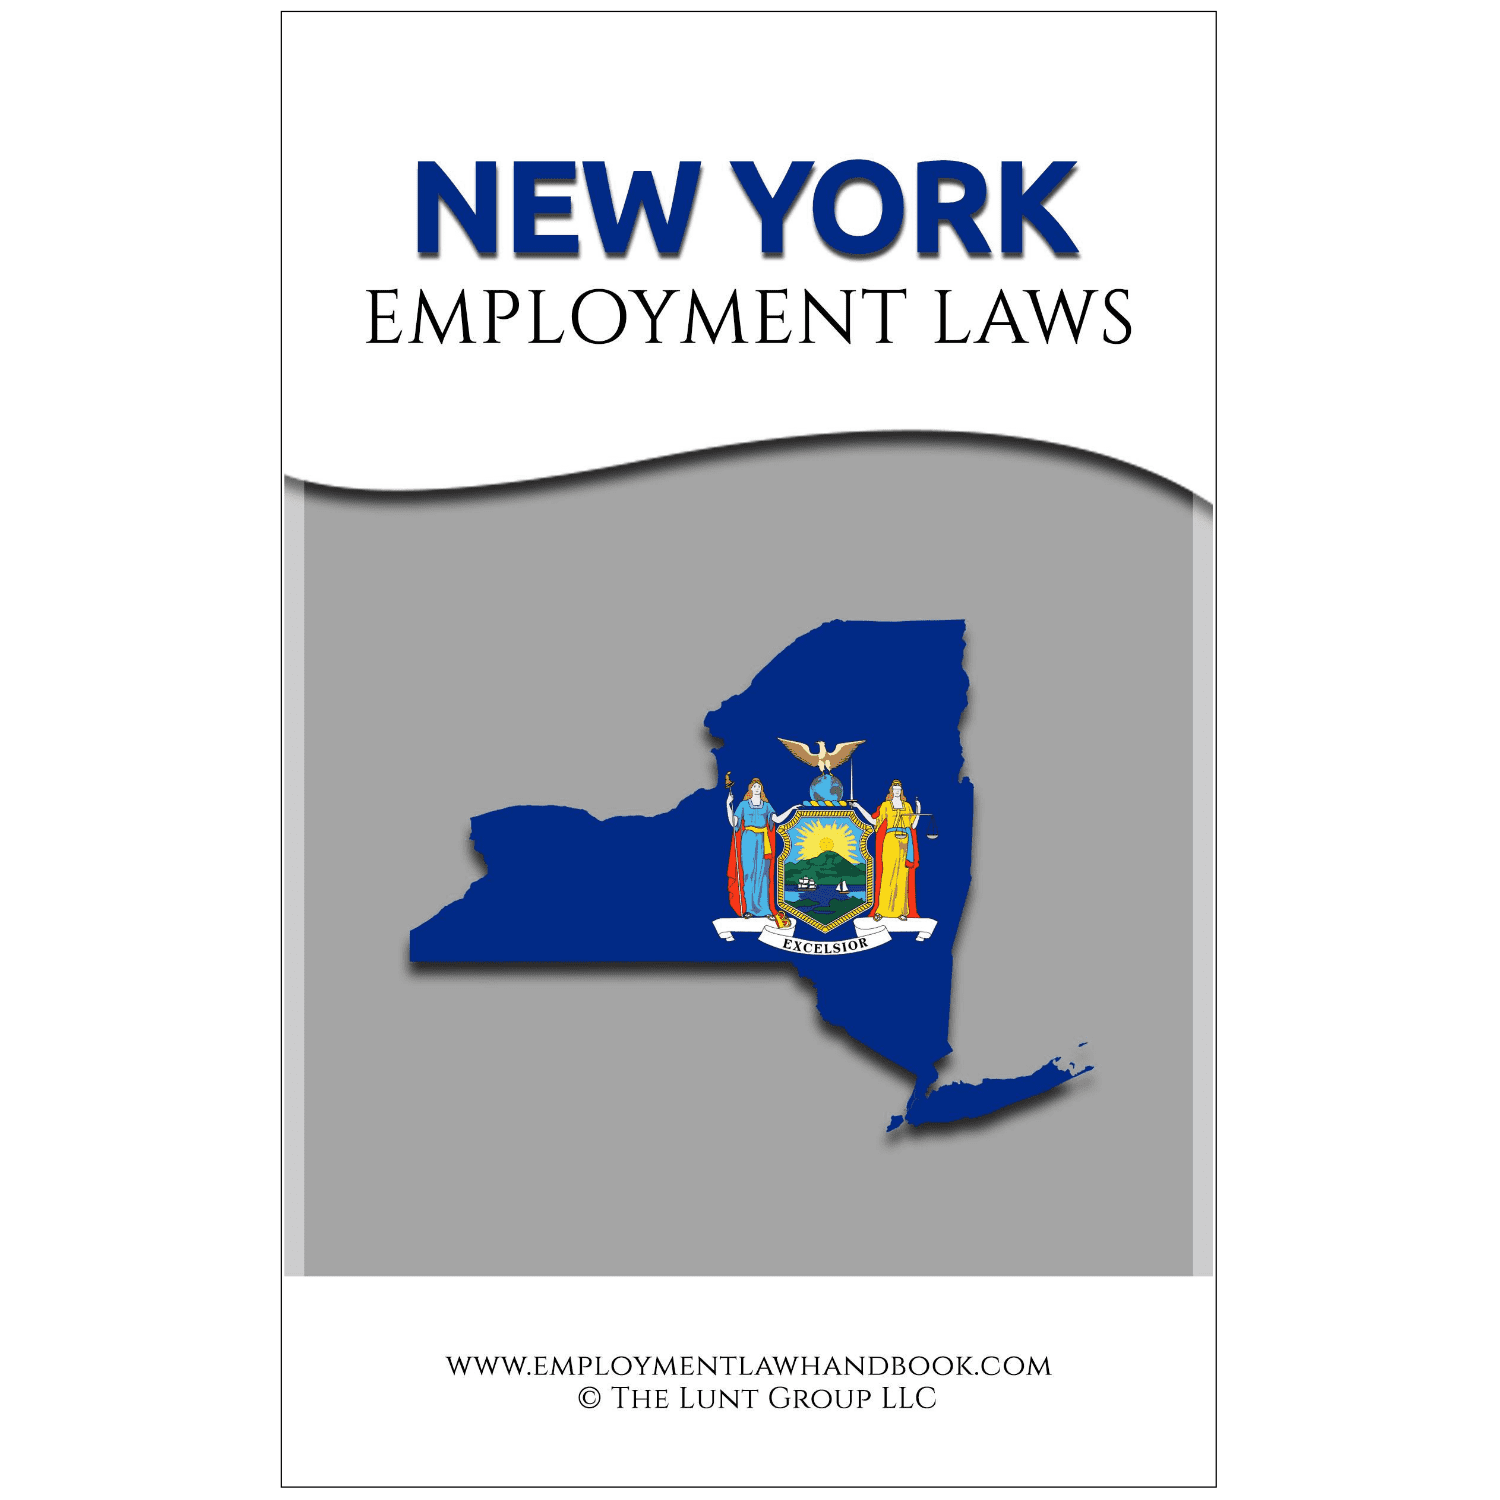 What are the dating laws in new york